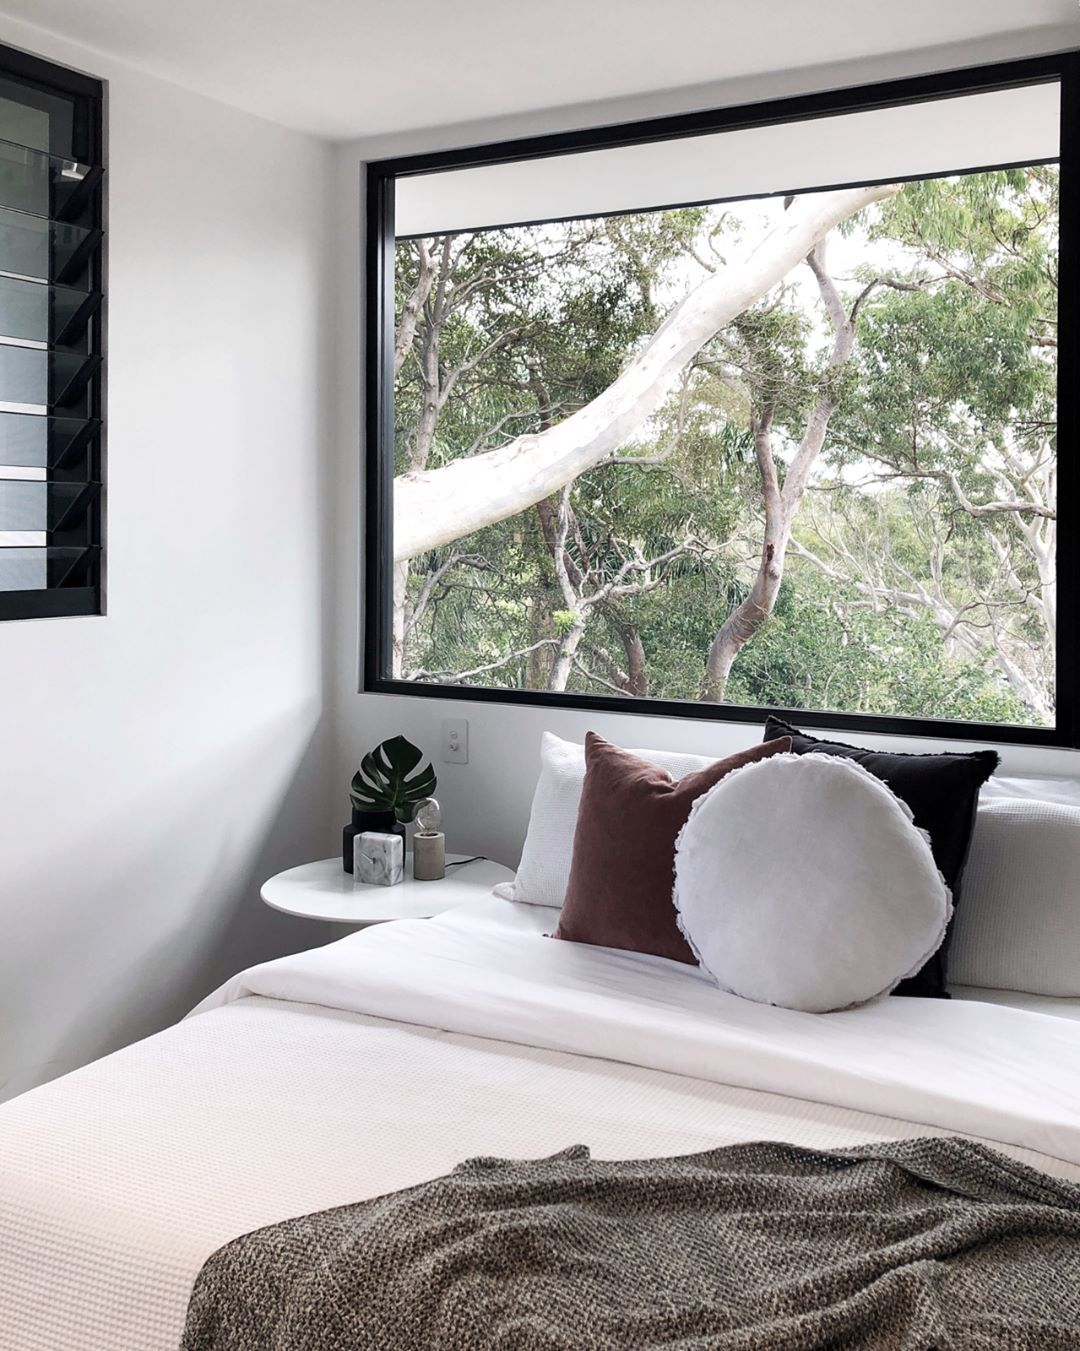 Bedroom ideas window behind bed  w i n d o w g o a l s how beautiful is this treetop bedroom weuve